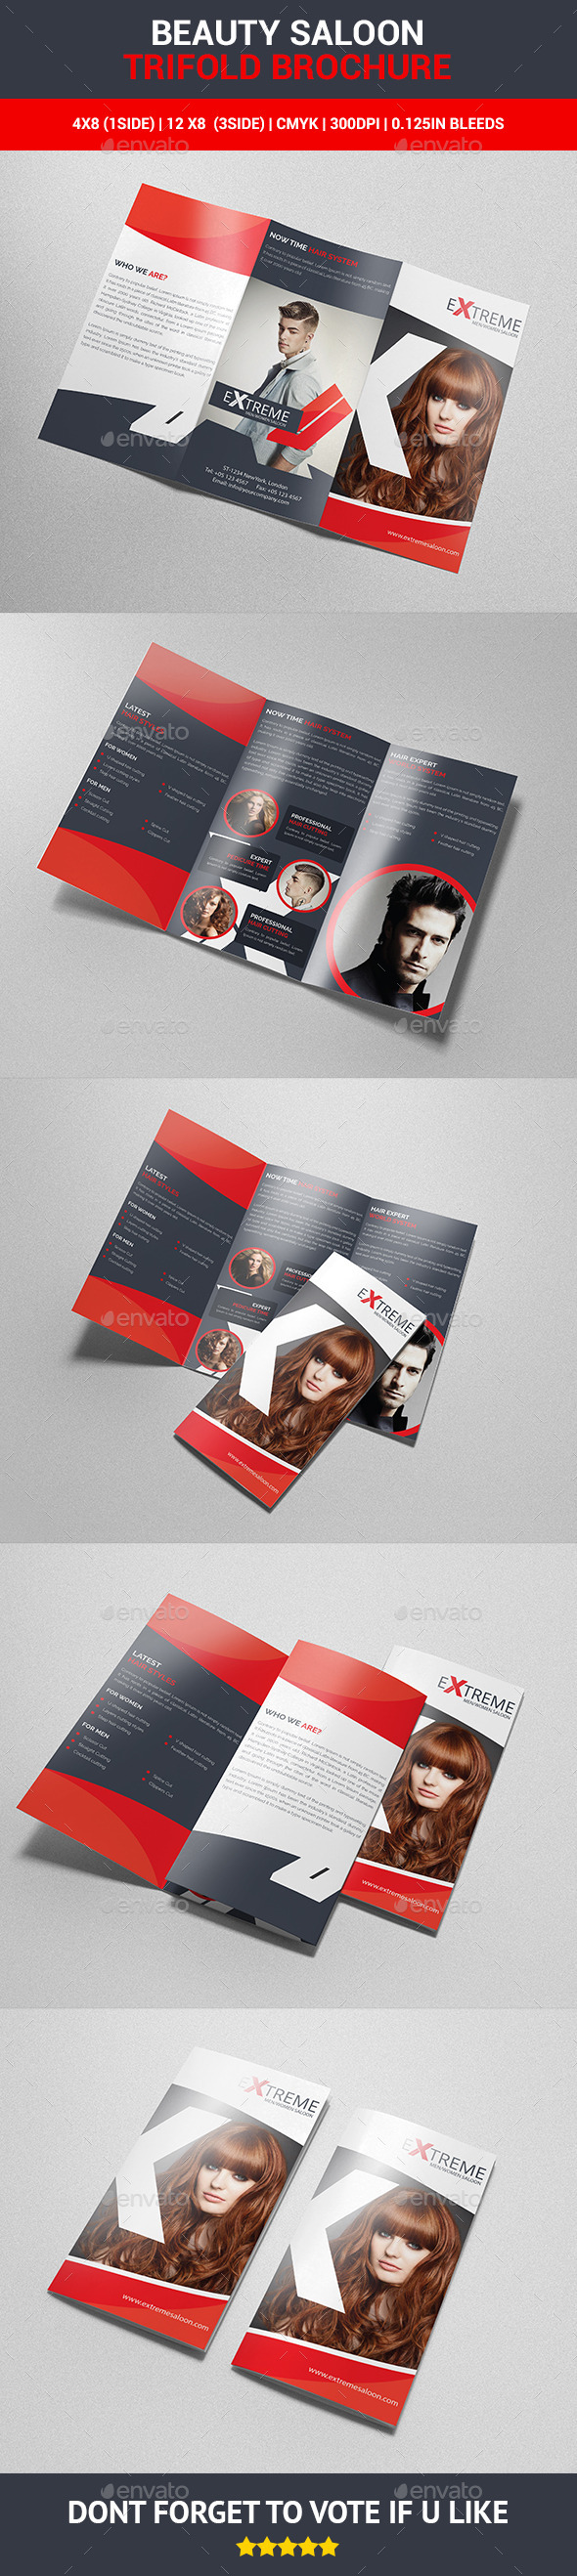 GraphicRiver Beauty Saloon Trifold Brochure 10298837